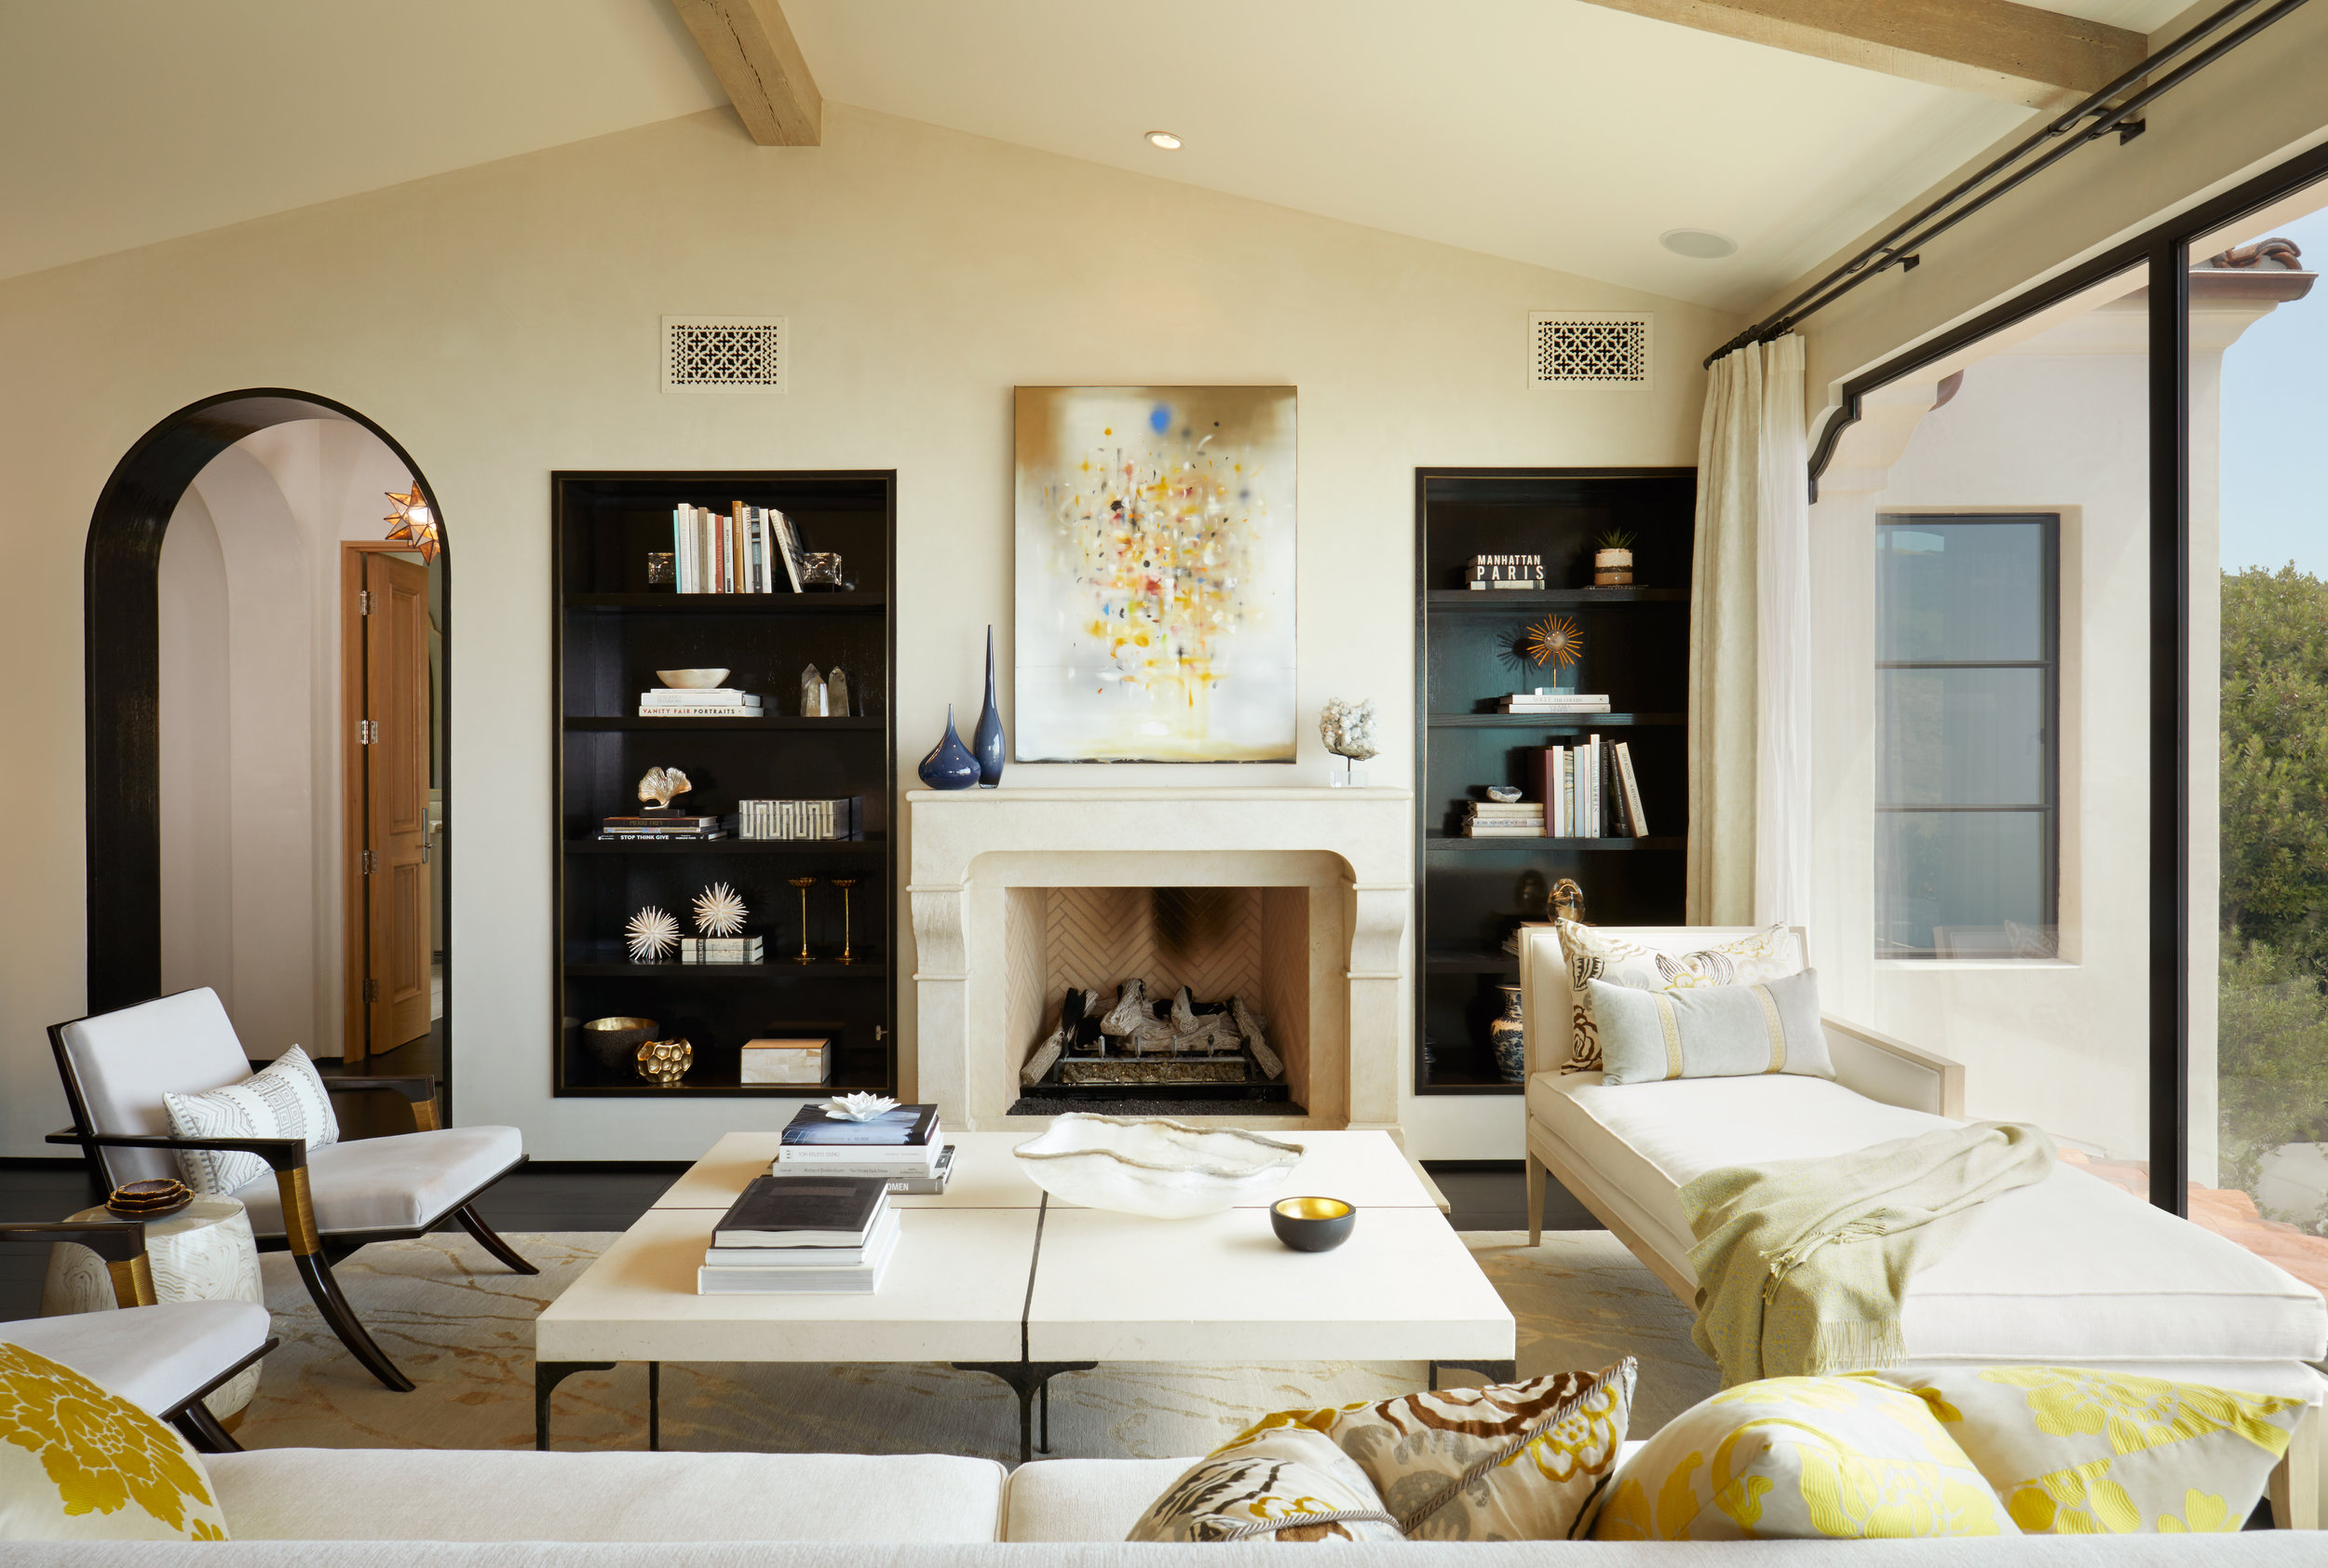 LAGUNA BEACH - SPANISH REVIVAL GREAT ROOM BY OATMAN ARCHITECTS